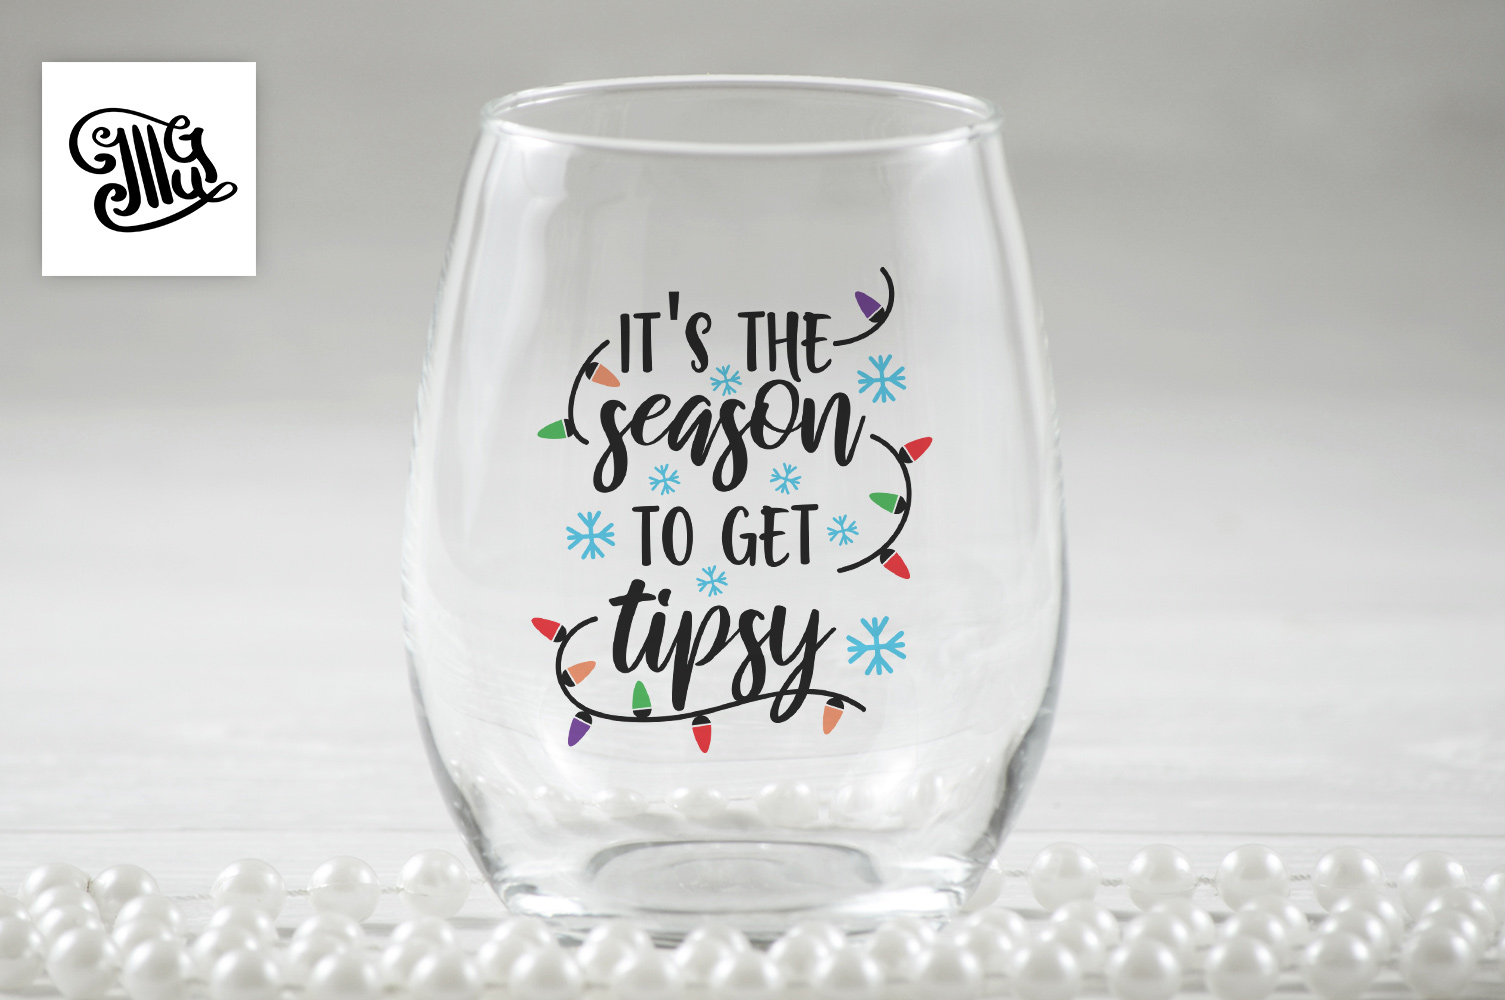 It's the season to get tipsy - Christmas wine example image 1